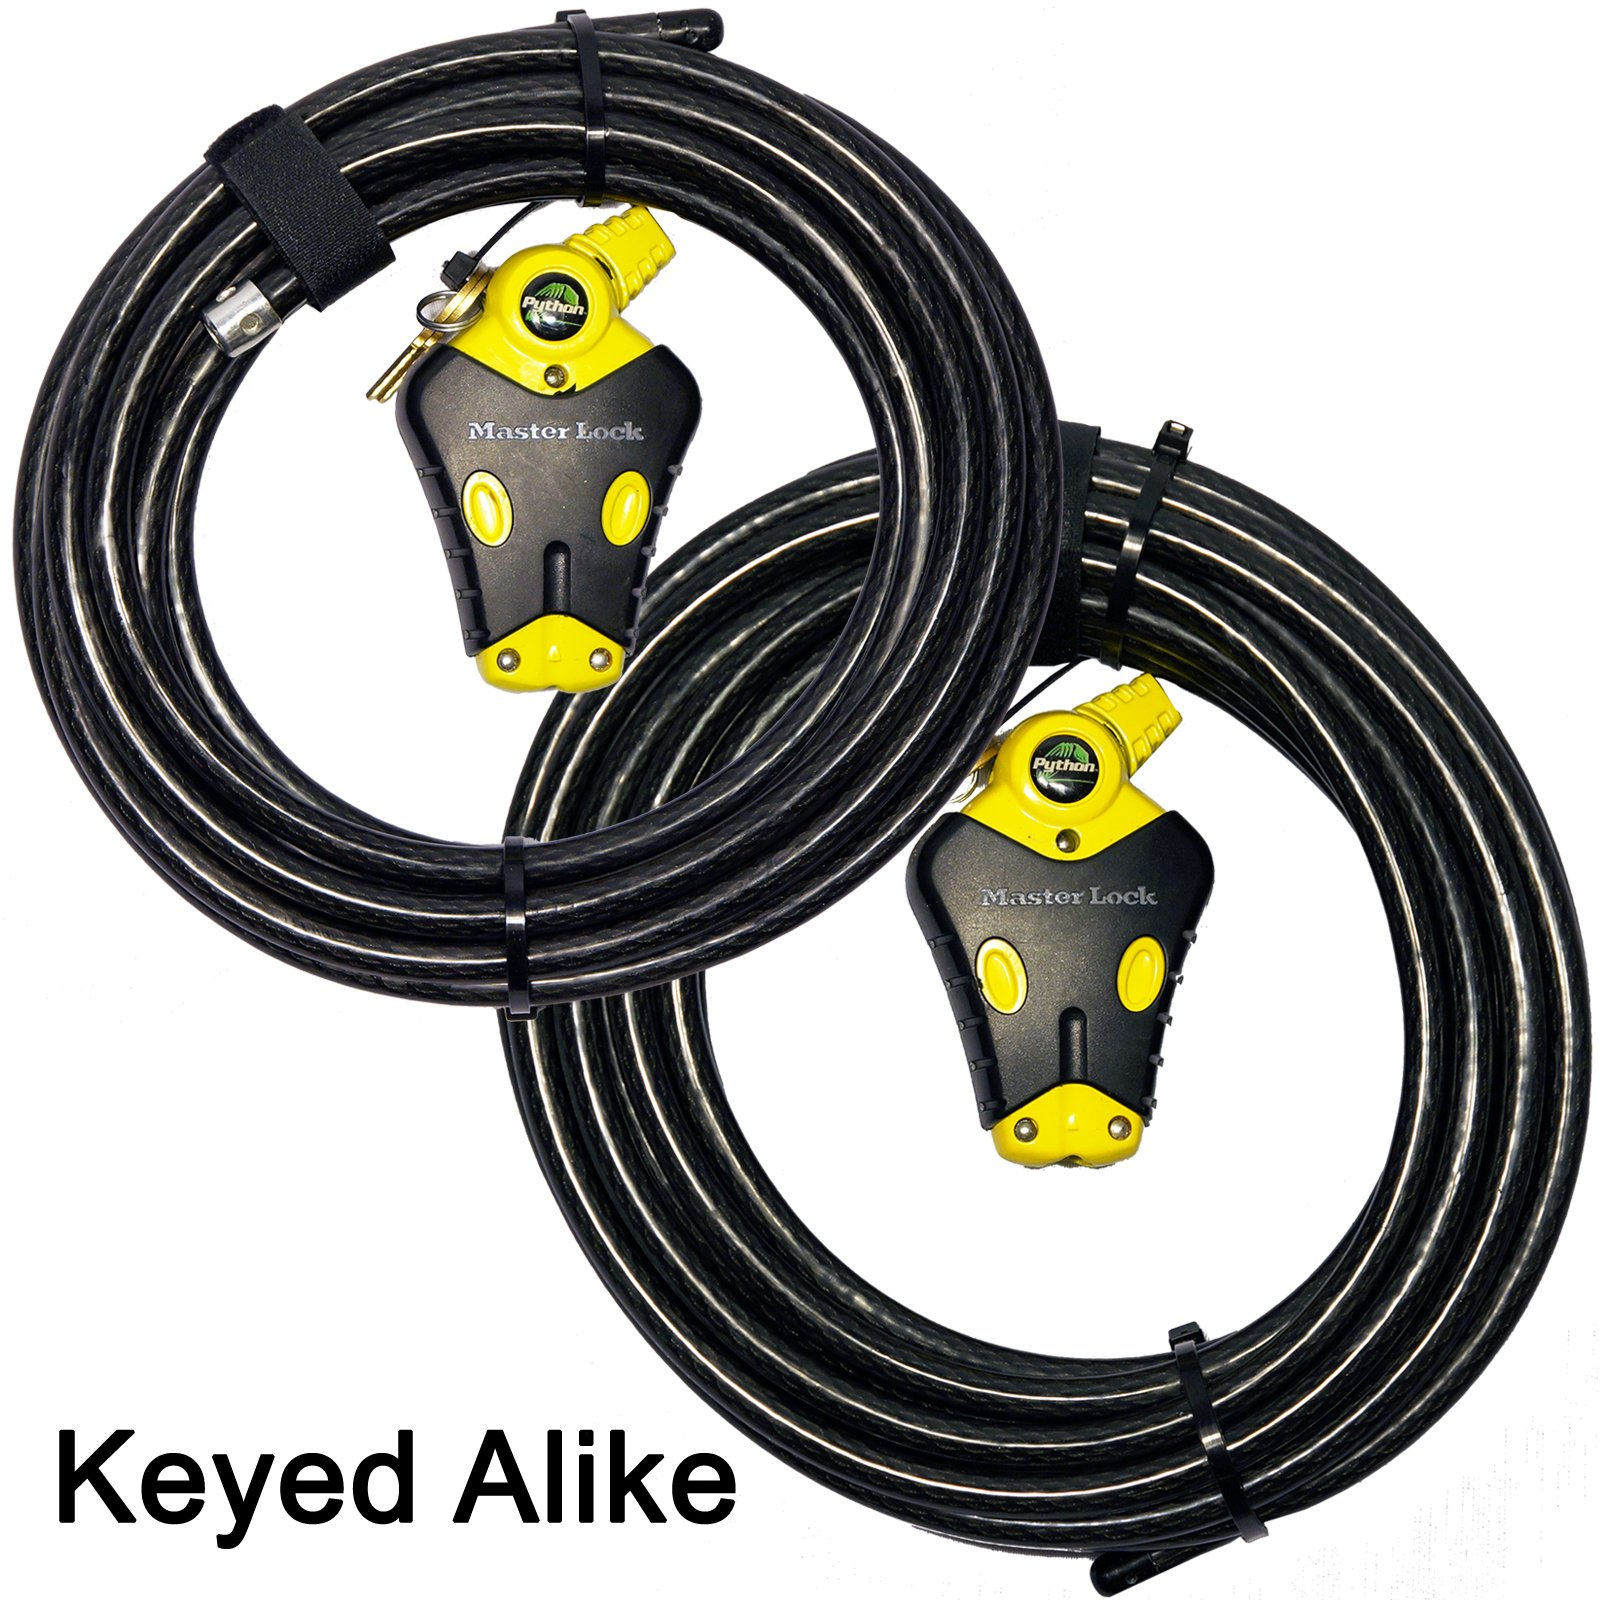 Trail Camera Lock Game Cinch Kayak Locking Cable Thin Cam Bike Cord Security NEW